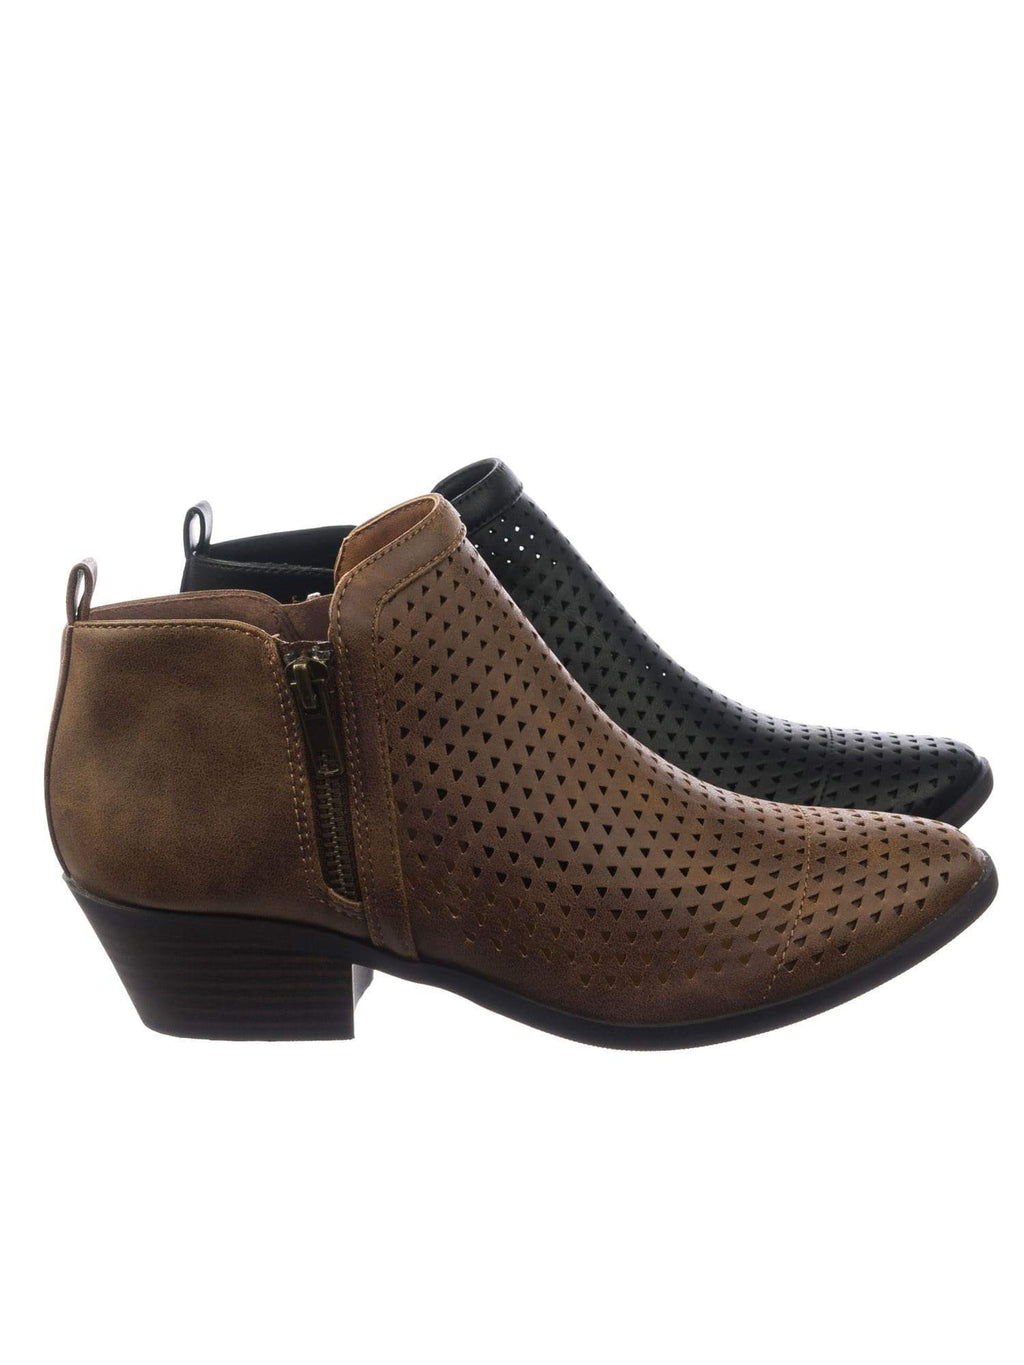 Mantis LbrnDist Women Vintage Western Ankle Bootie Block Heel Perforated Hole Cut Out